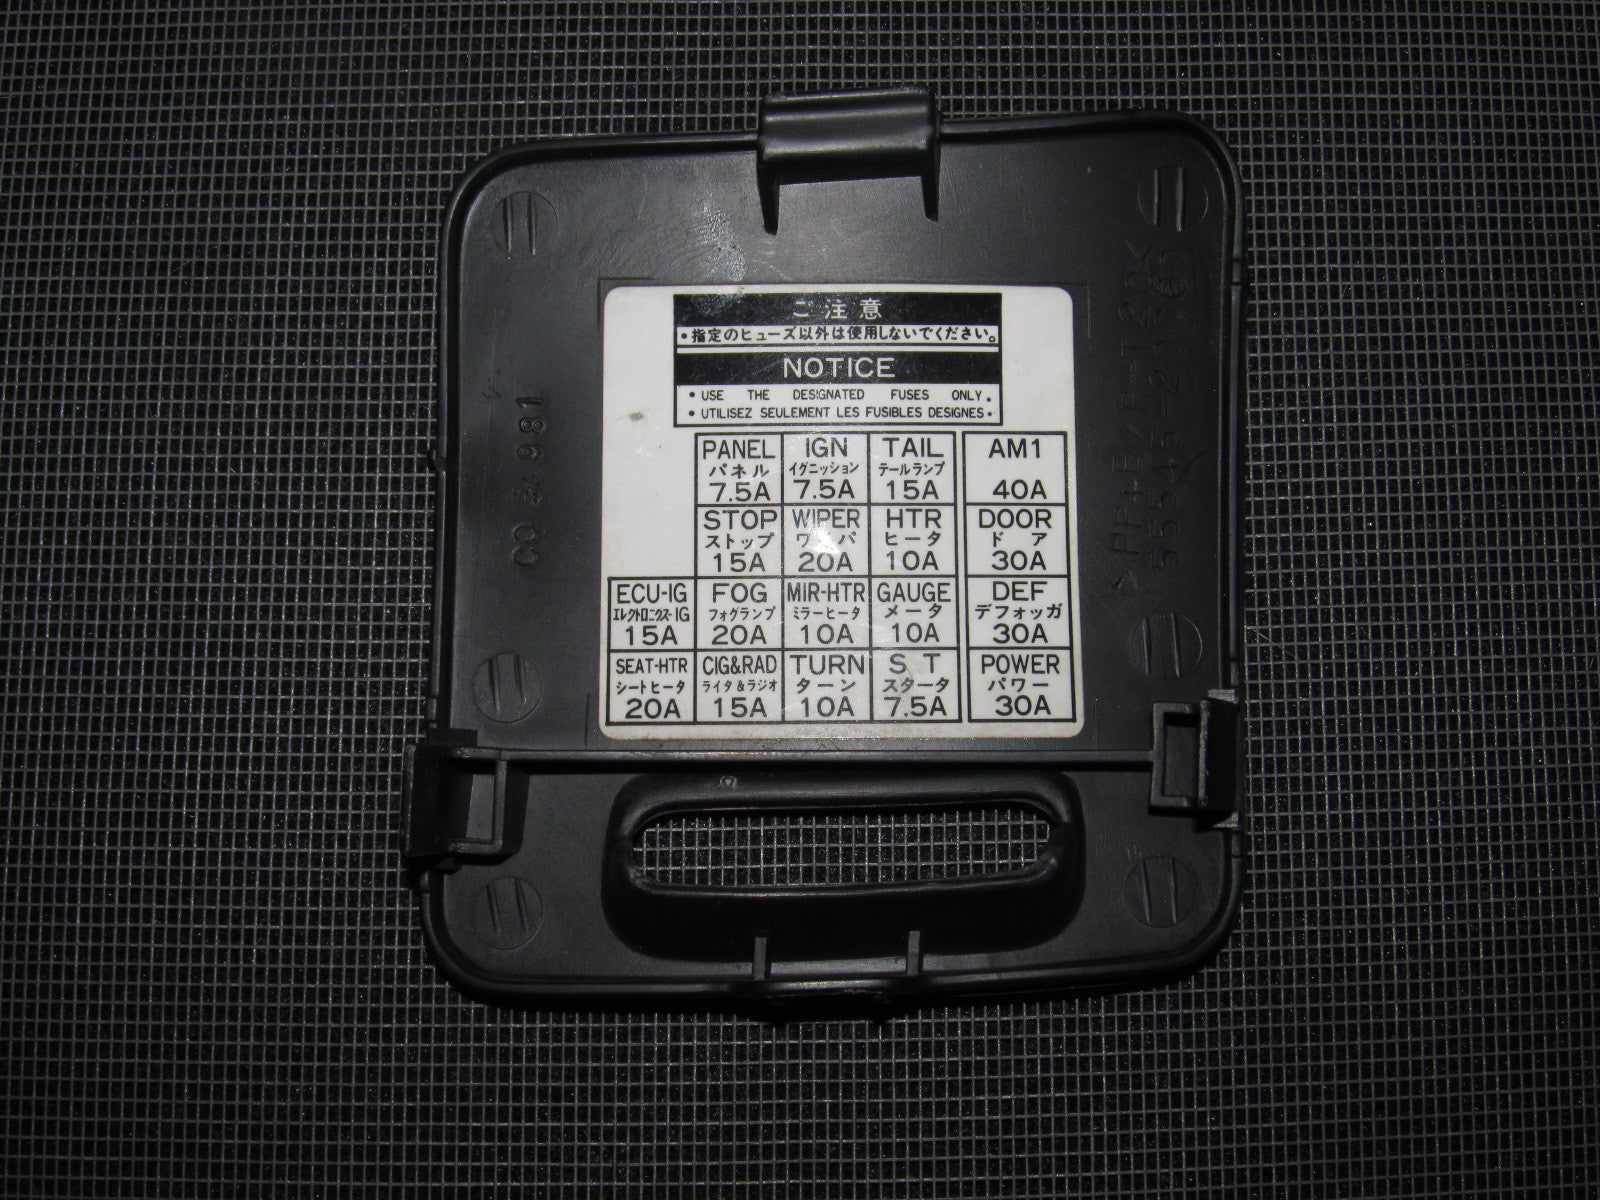 IMG_6144?v=1423105523 94 95 96 97 98 99 toyota celica oem interior fuse box cover toyota celica fuse box layout at eliteediting.co